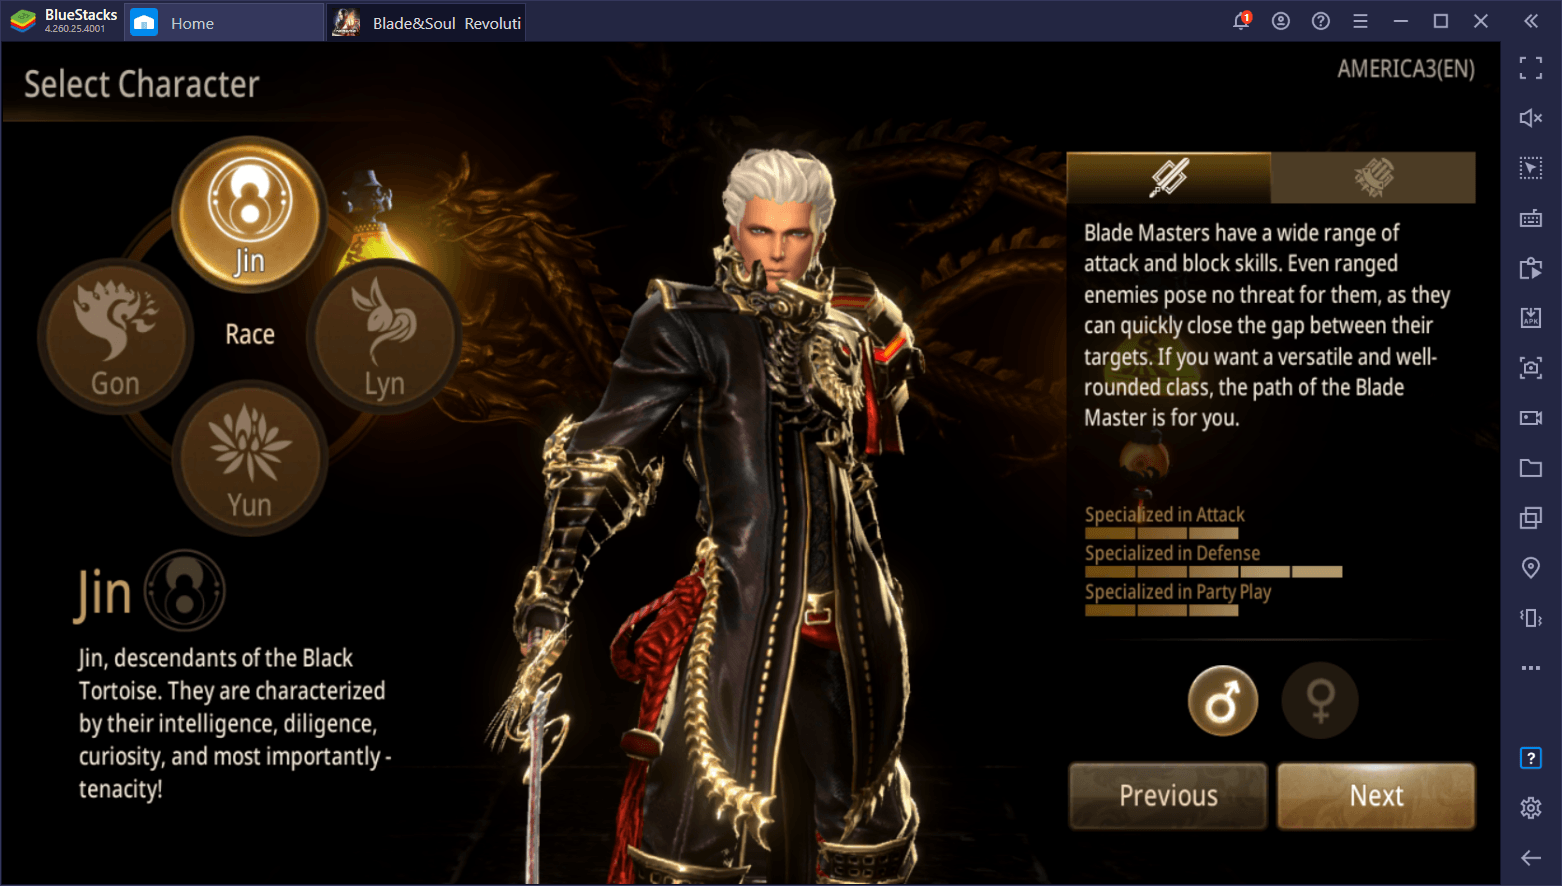 Blade & Soul Revolution – Tips and Tricks for Mastering the Combat